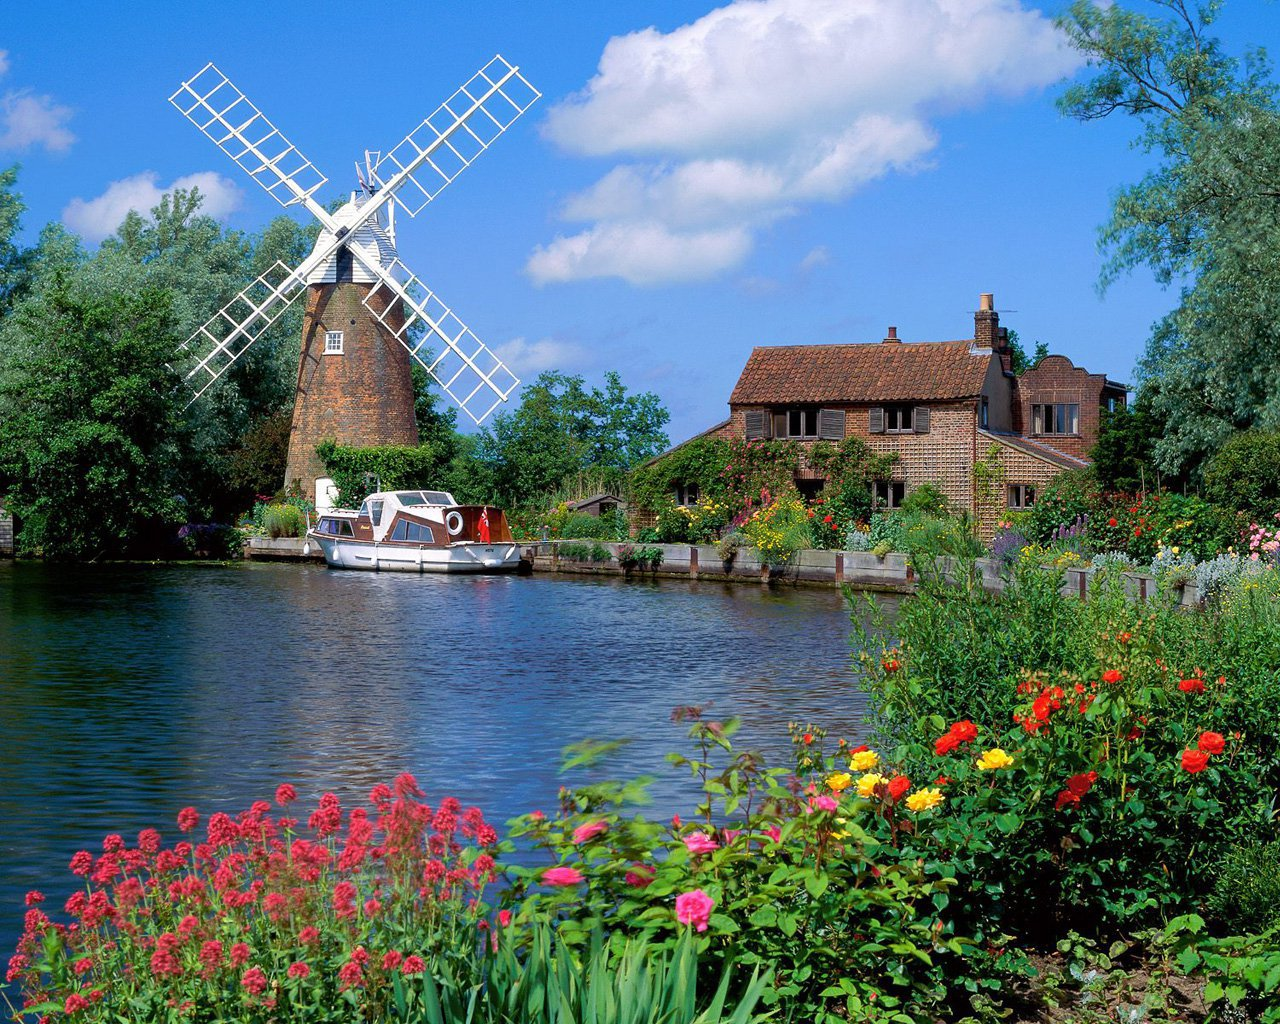 norfolk_england-1280